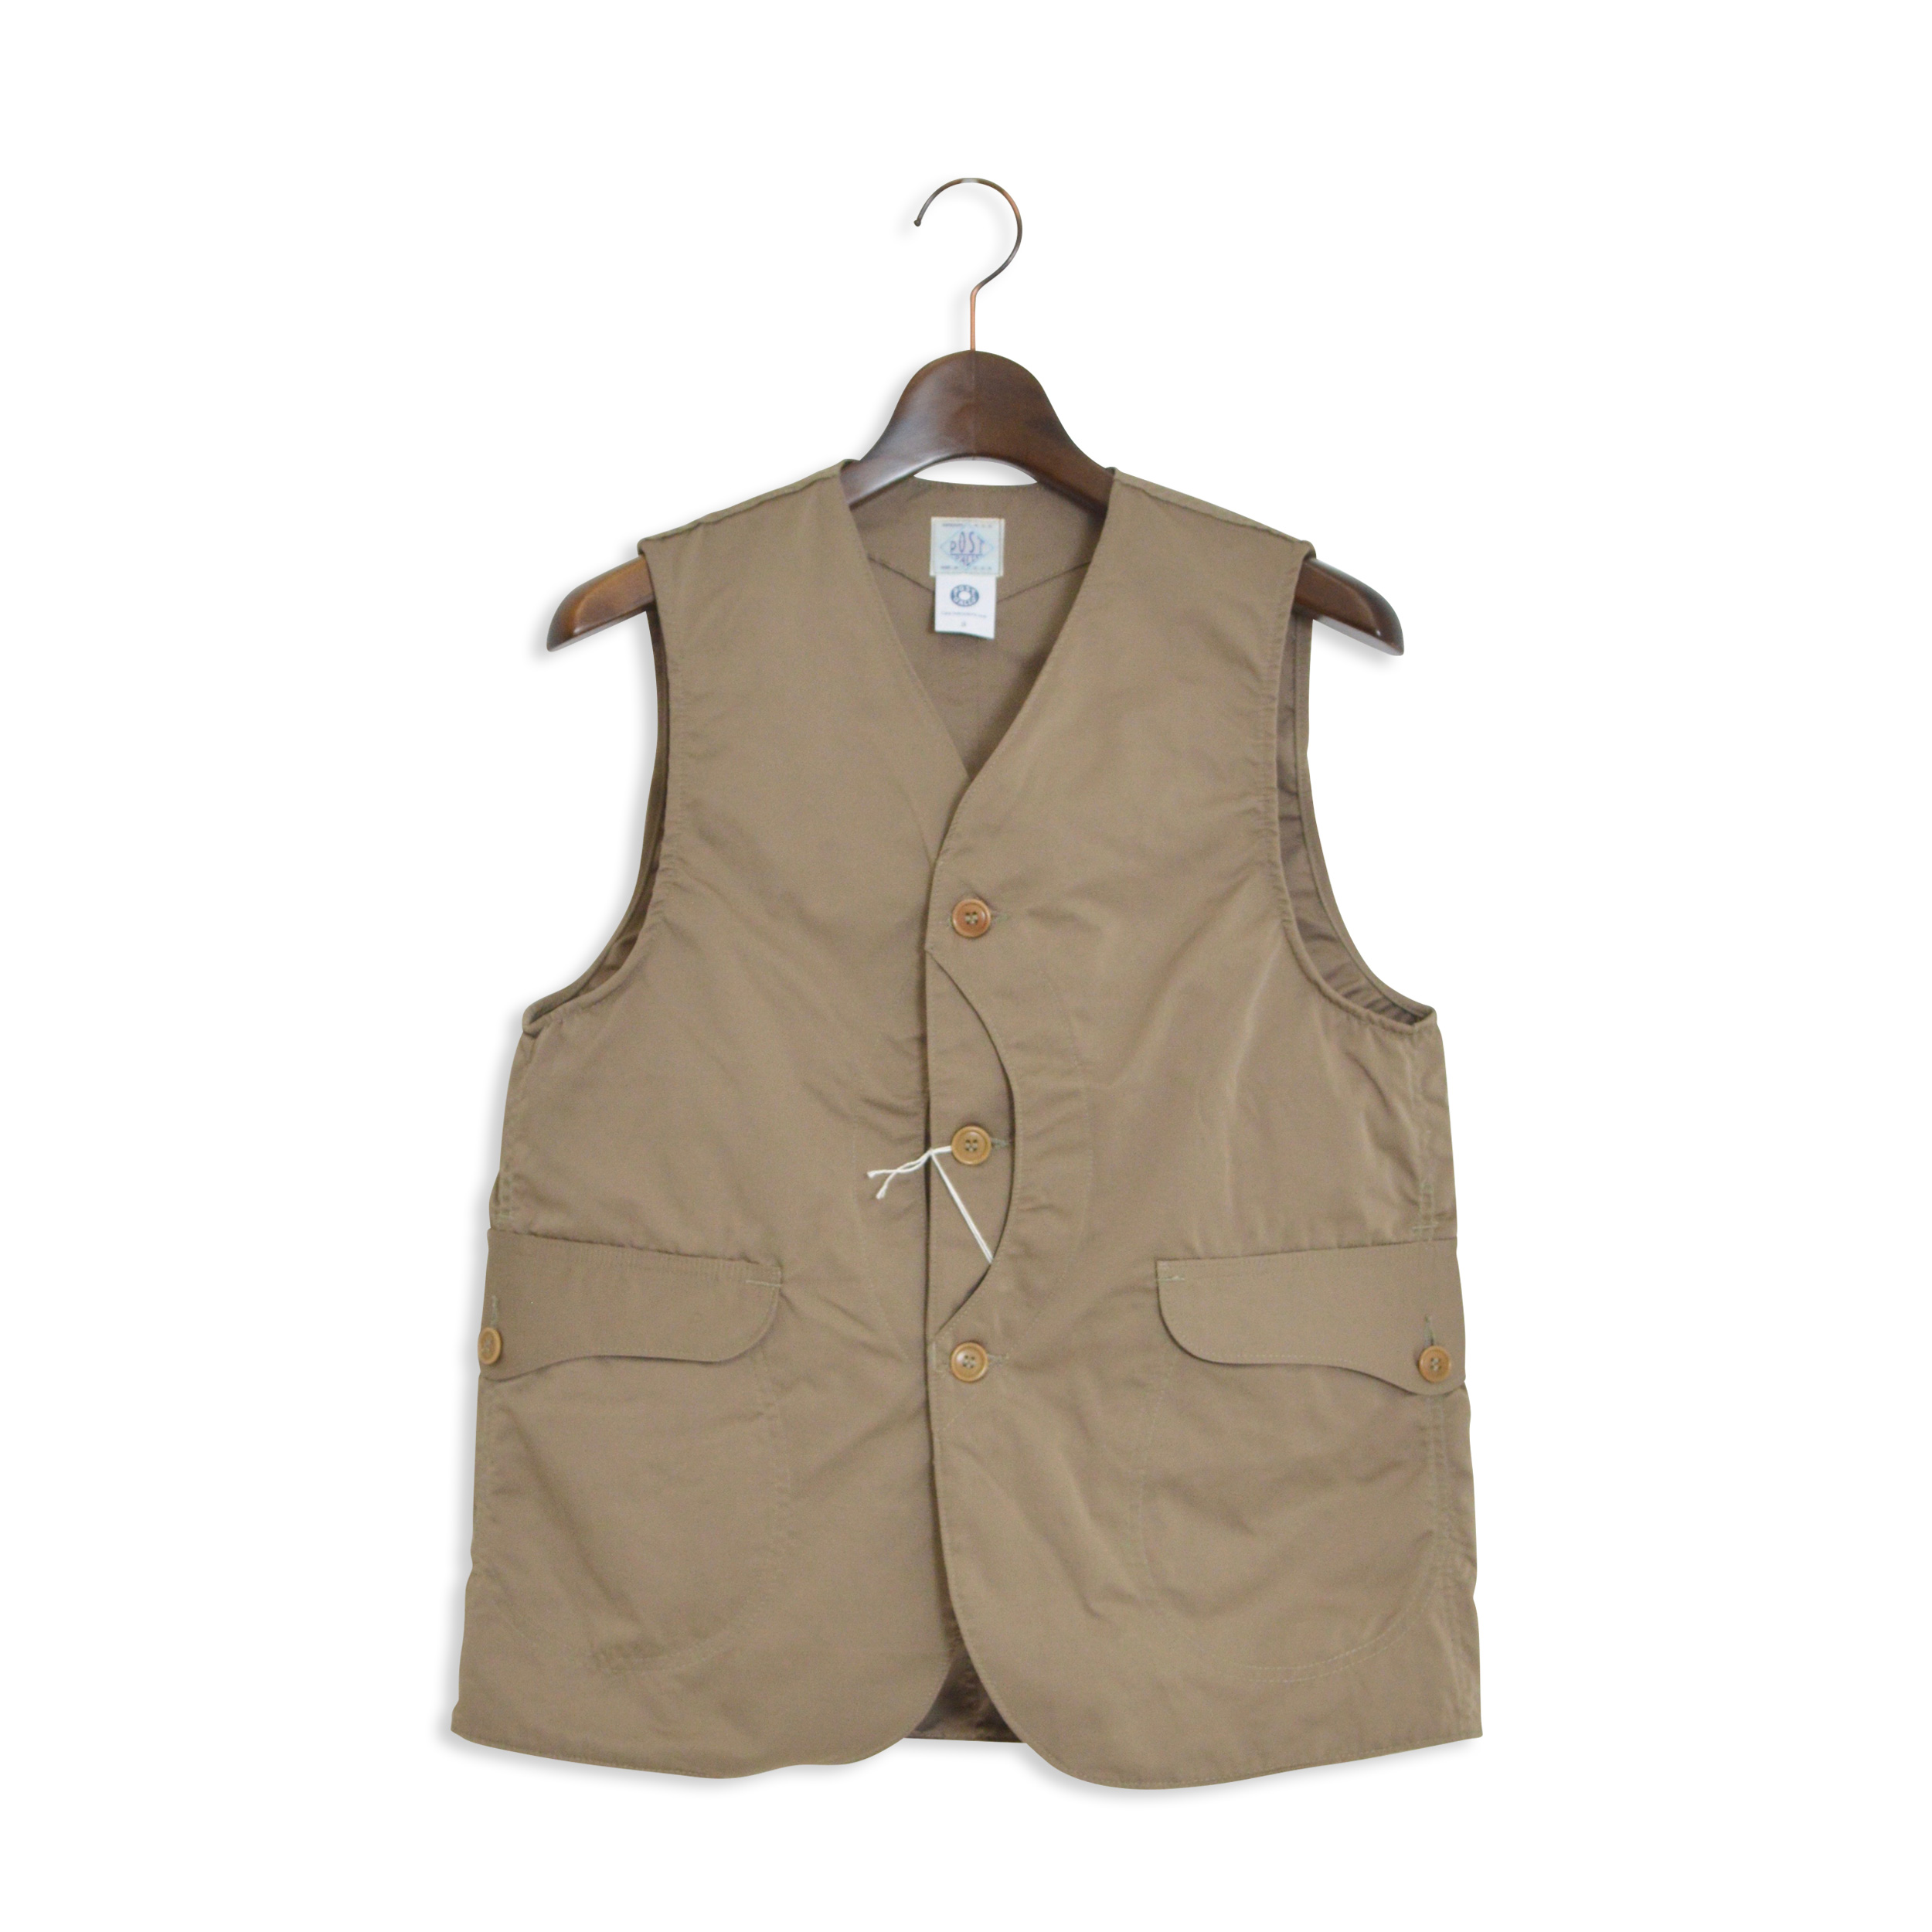 【POST O'ALLS】POST OVERALLS(ポストオーバーオールズ)/1512 ROYAL TRAVELER/POLYESTER GROSGRAIN (1703)